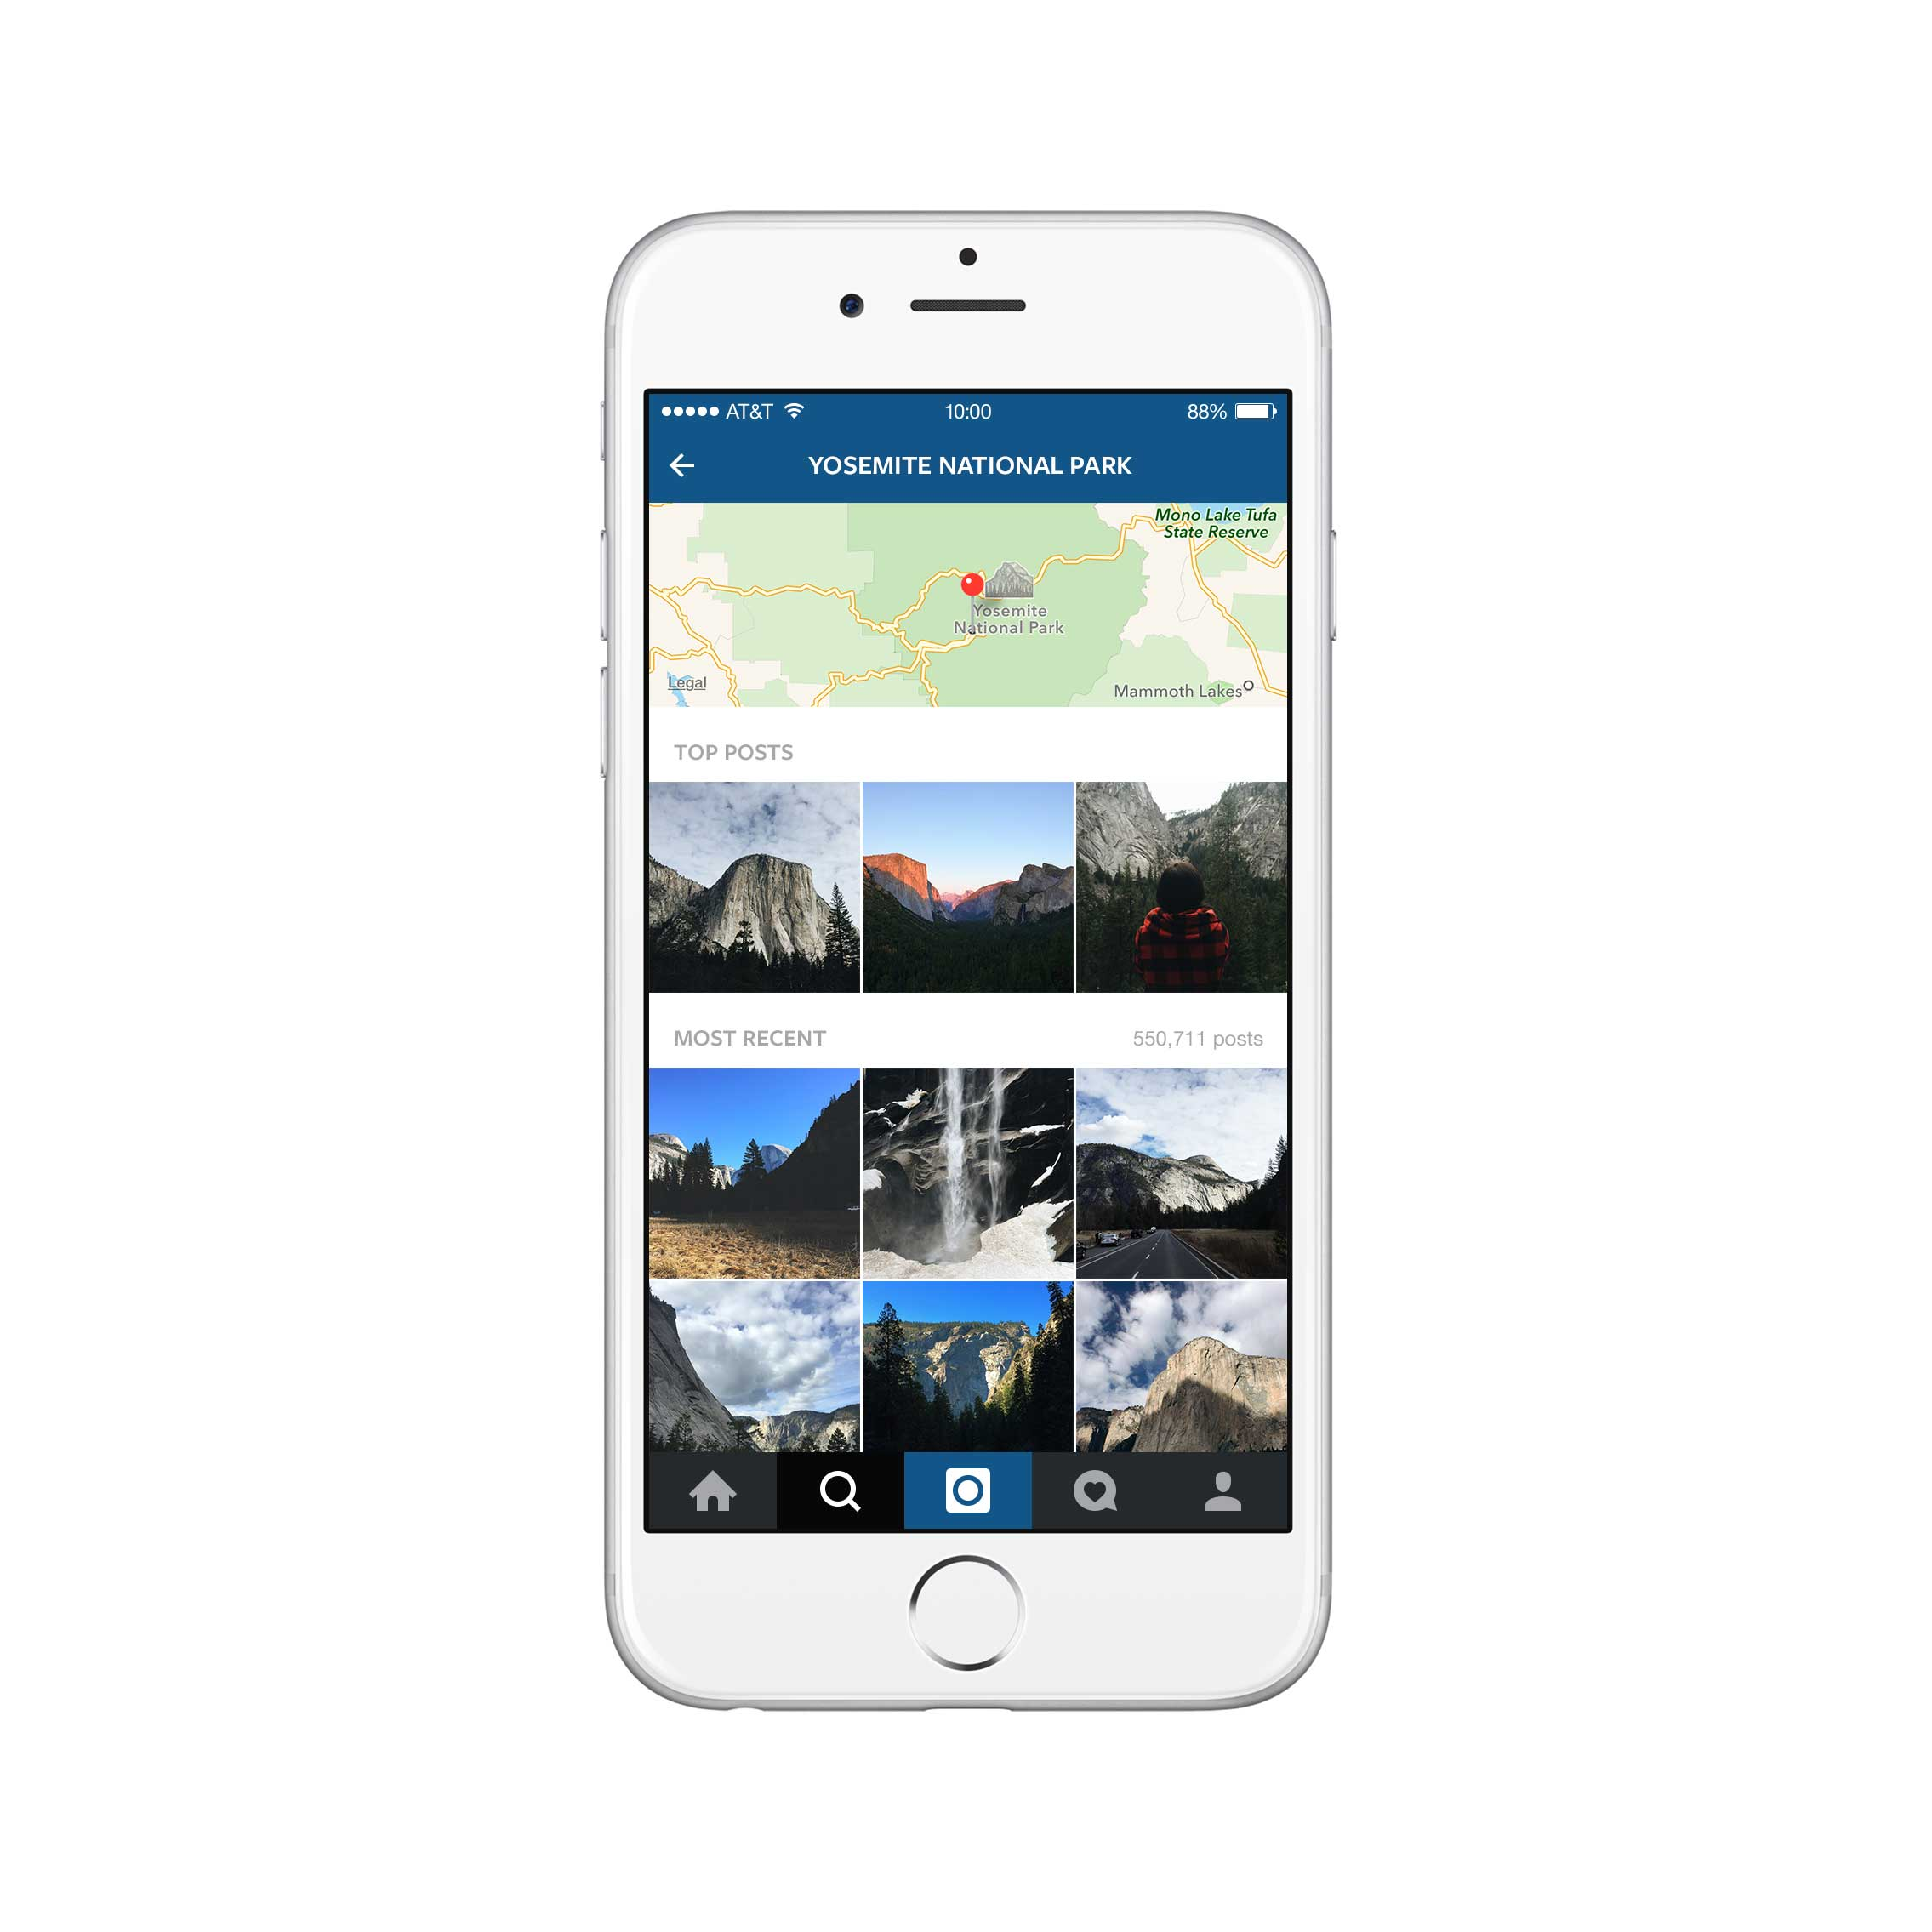 For each location, users can see the most recent and trending images posted on Instagram